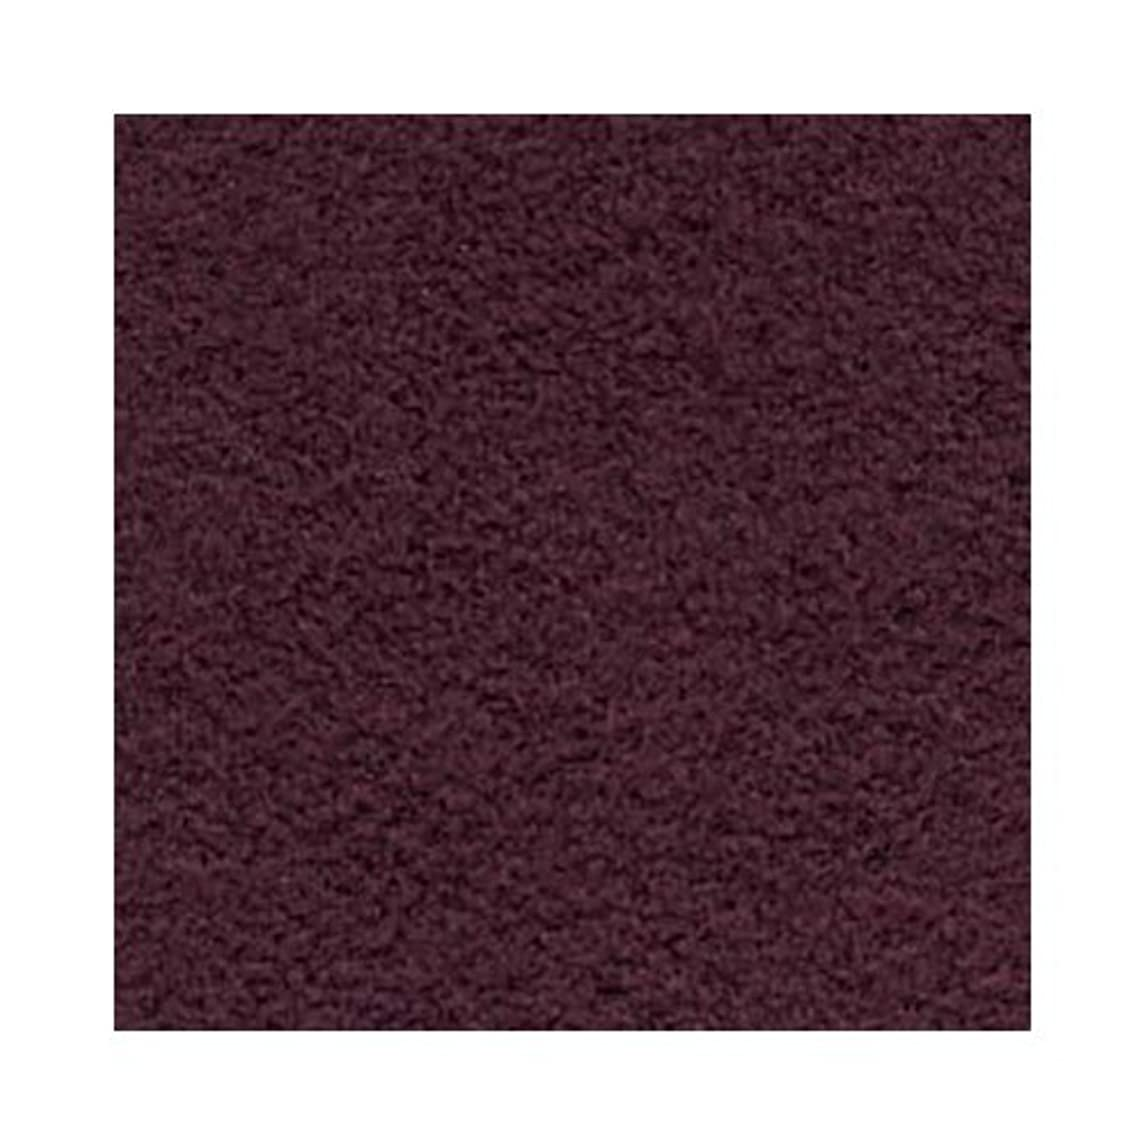 Ultra Suede for Beading Foundation and Cabochon Work Bordeaux Burgundy Red 8.5x8.5 Inches